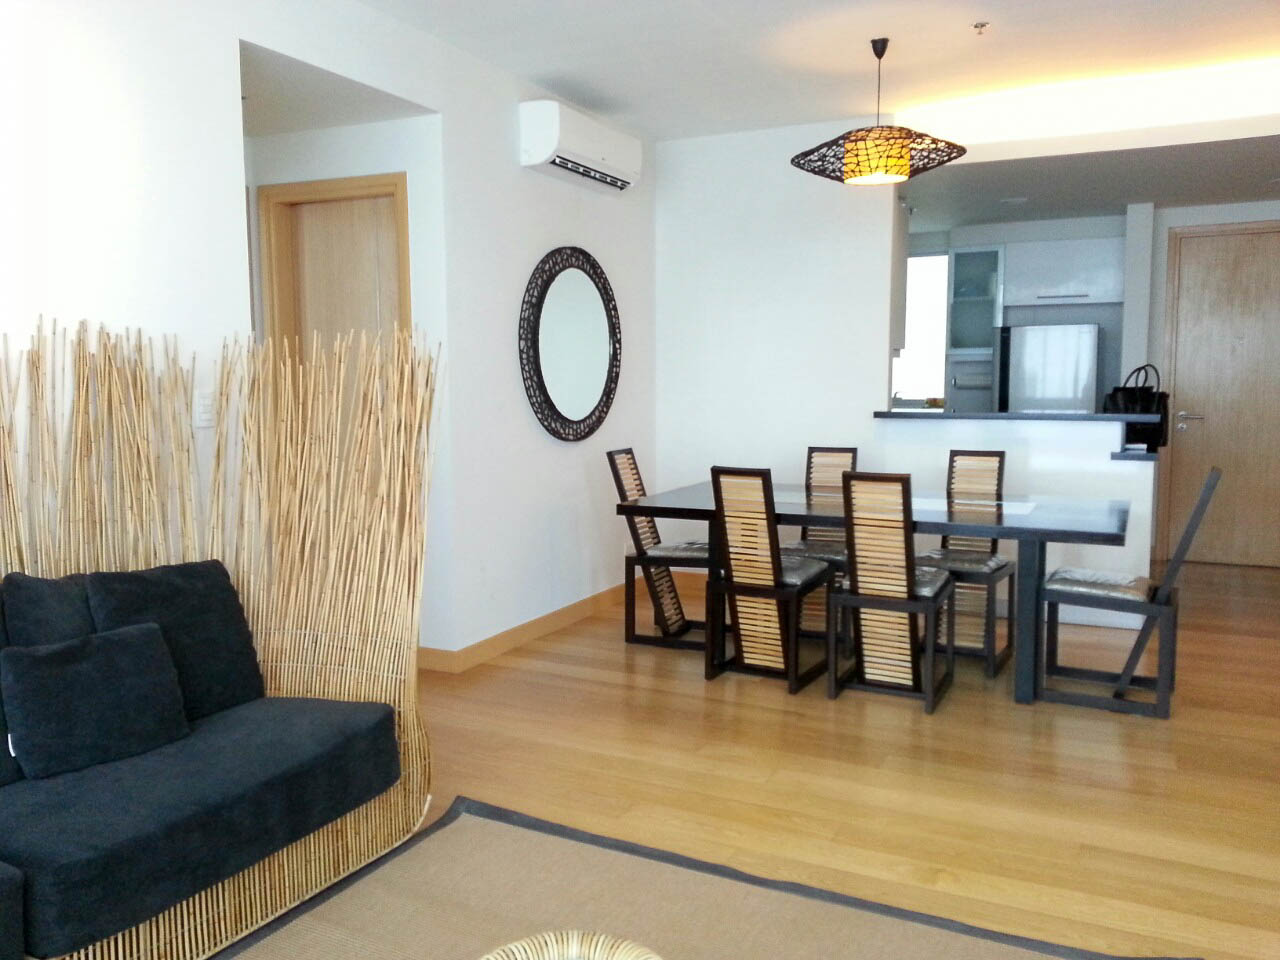 2 bedroom condo for rent in cebu business park 1016 residences for 1 bedroom condo for rent